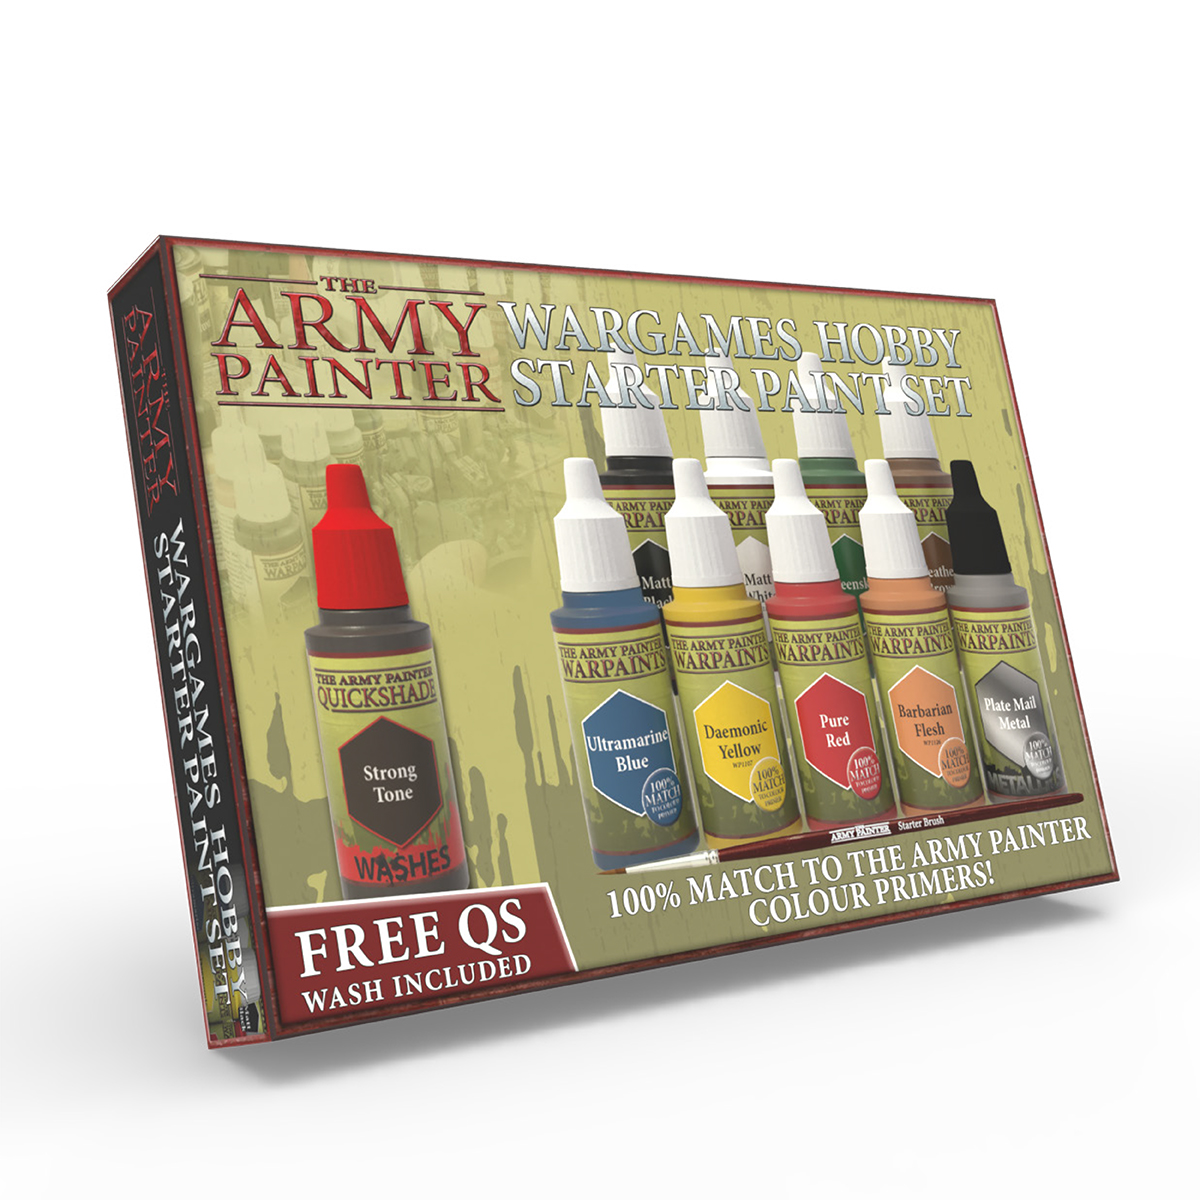 Army Painter Warpaints Starter Paint Set